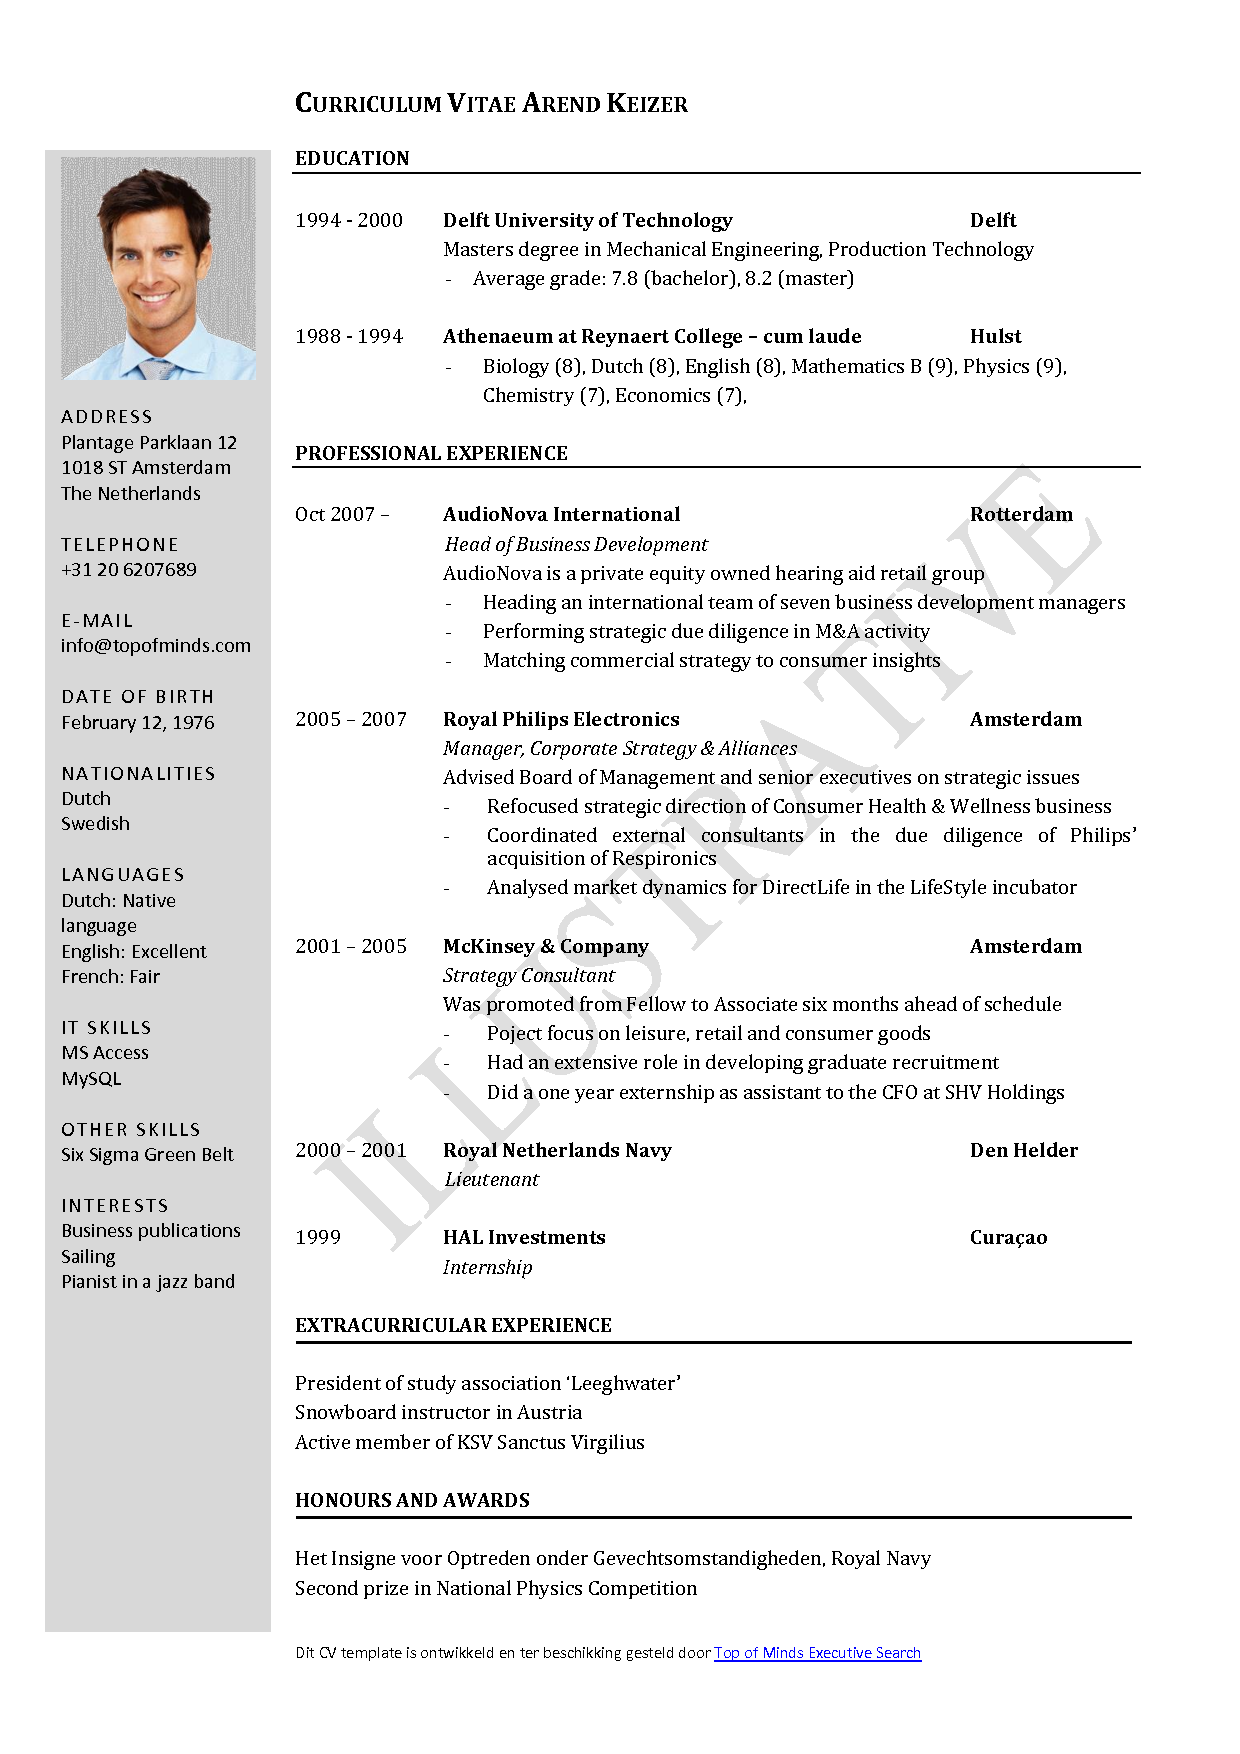 Resume Templates Latest #latest #resume #ResumeTemplates #templates ...